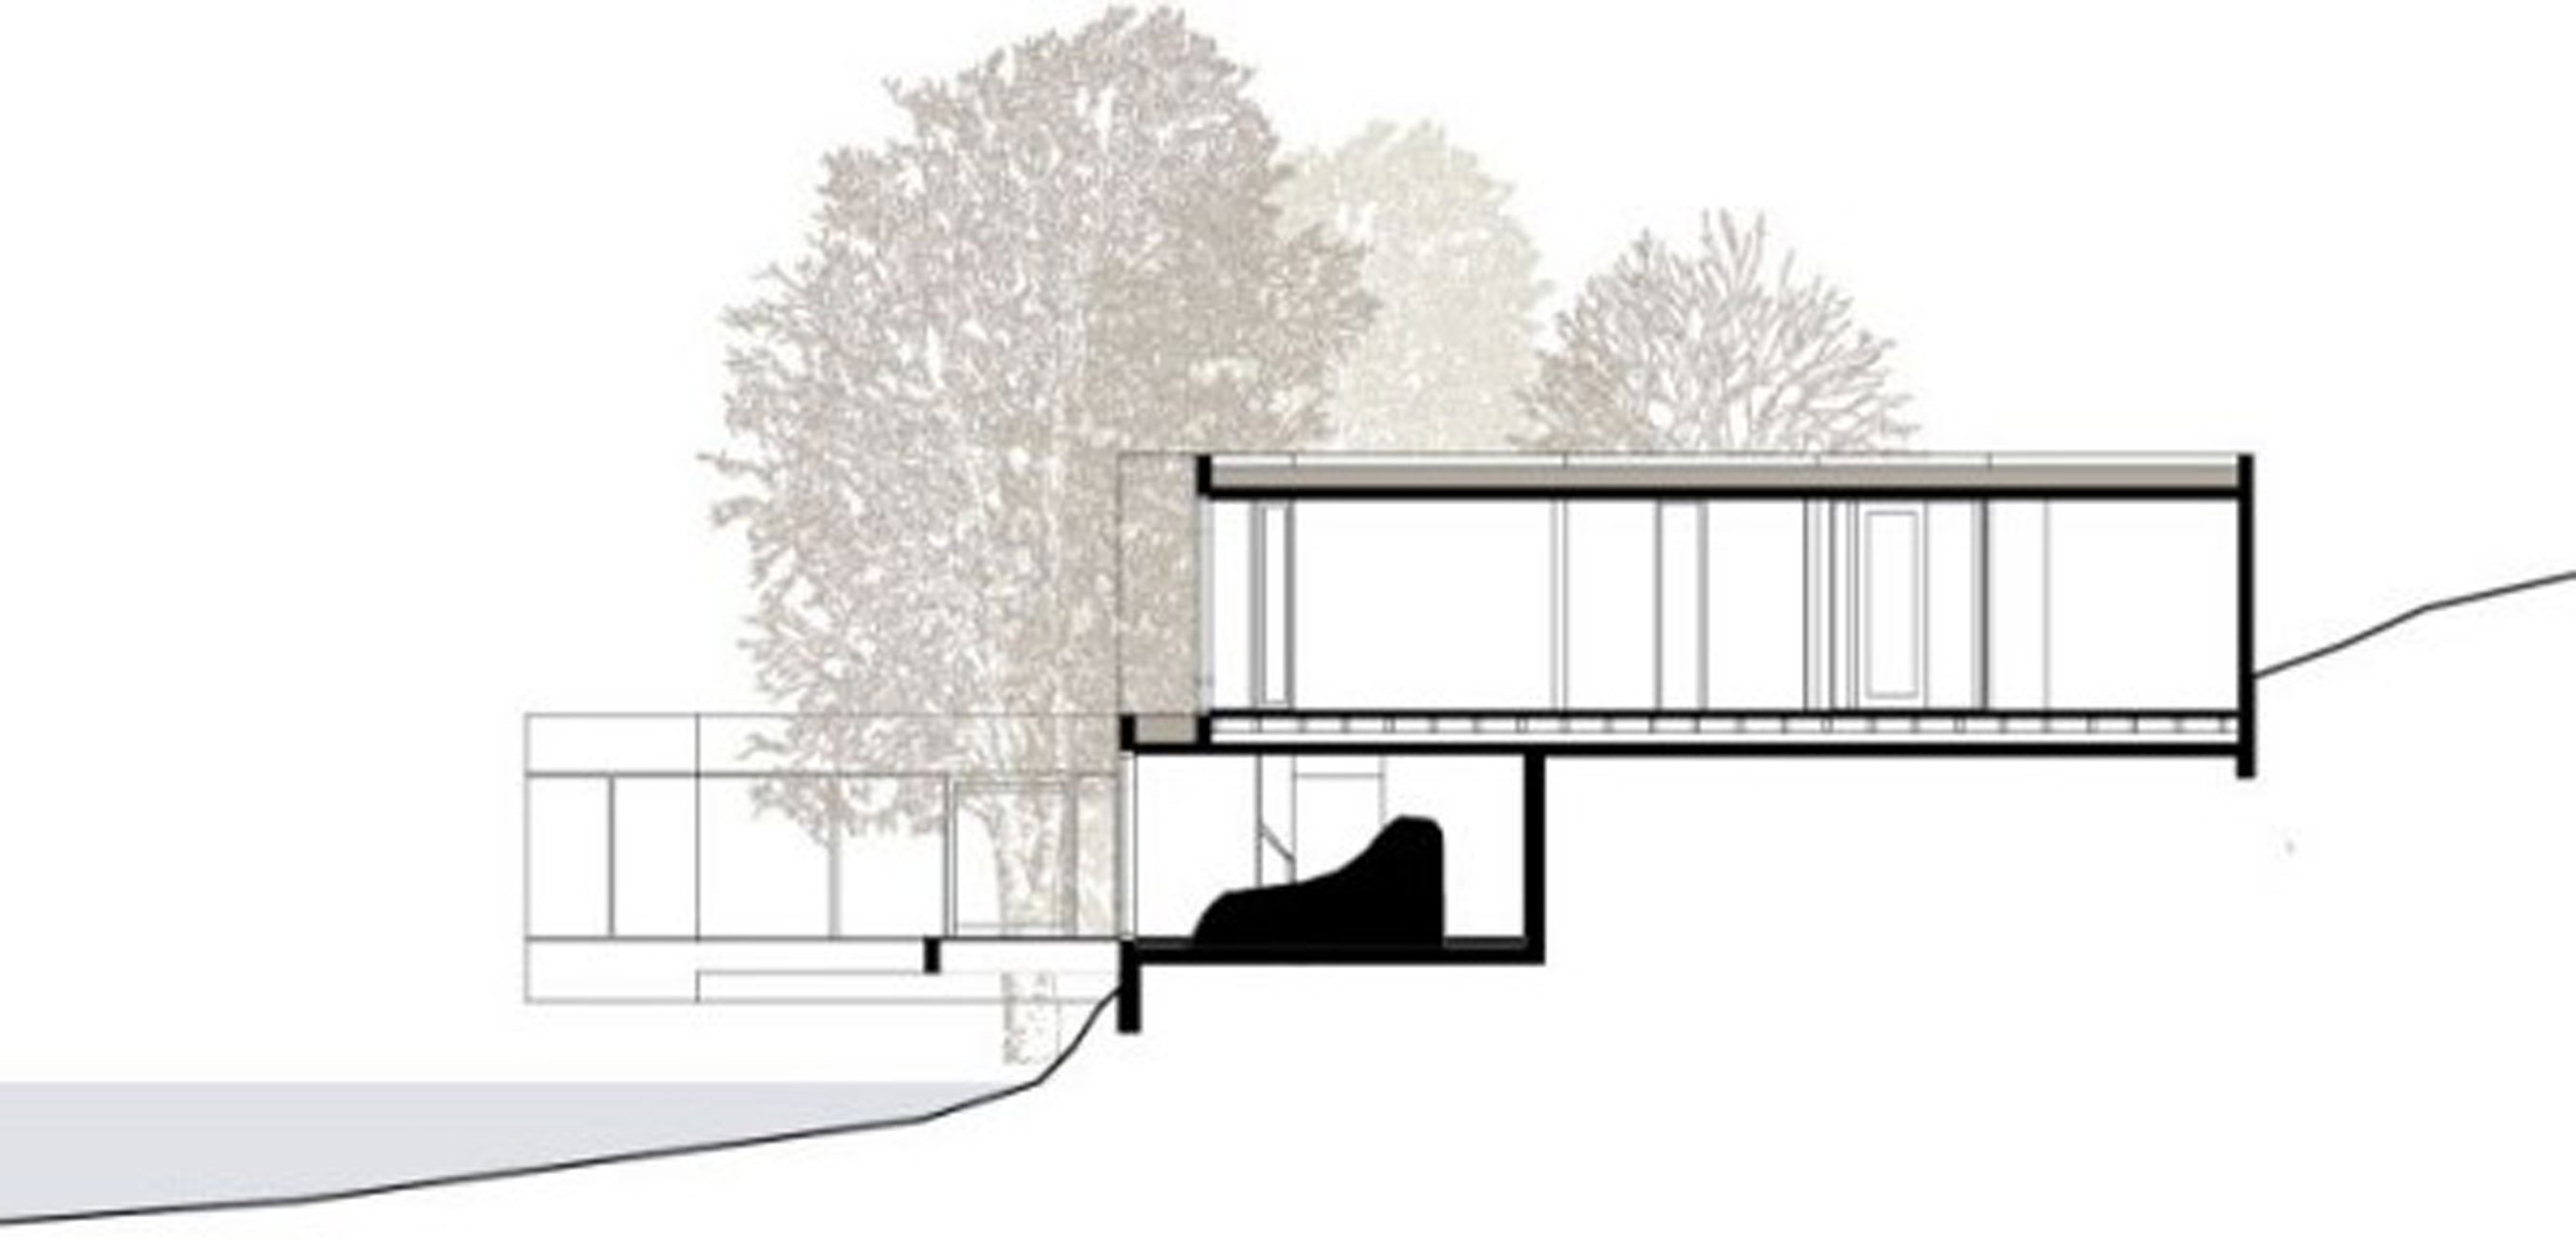 Treehouse, Geometric Guest House Design in China - Architecture Concept